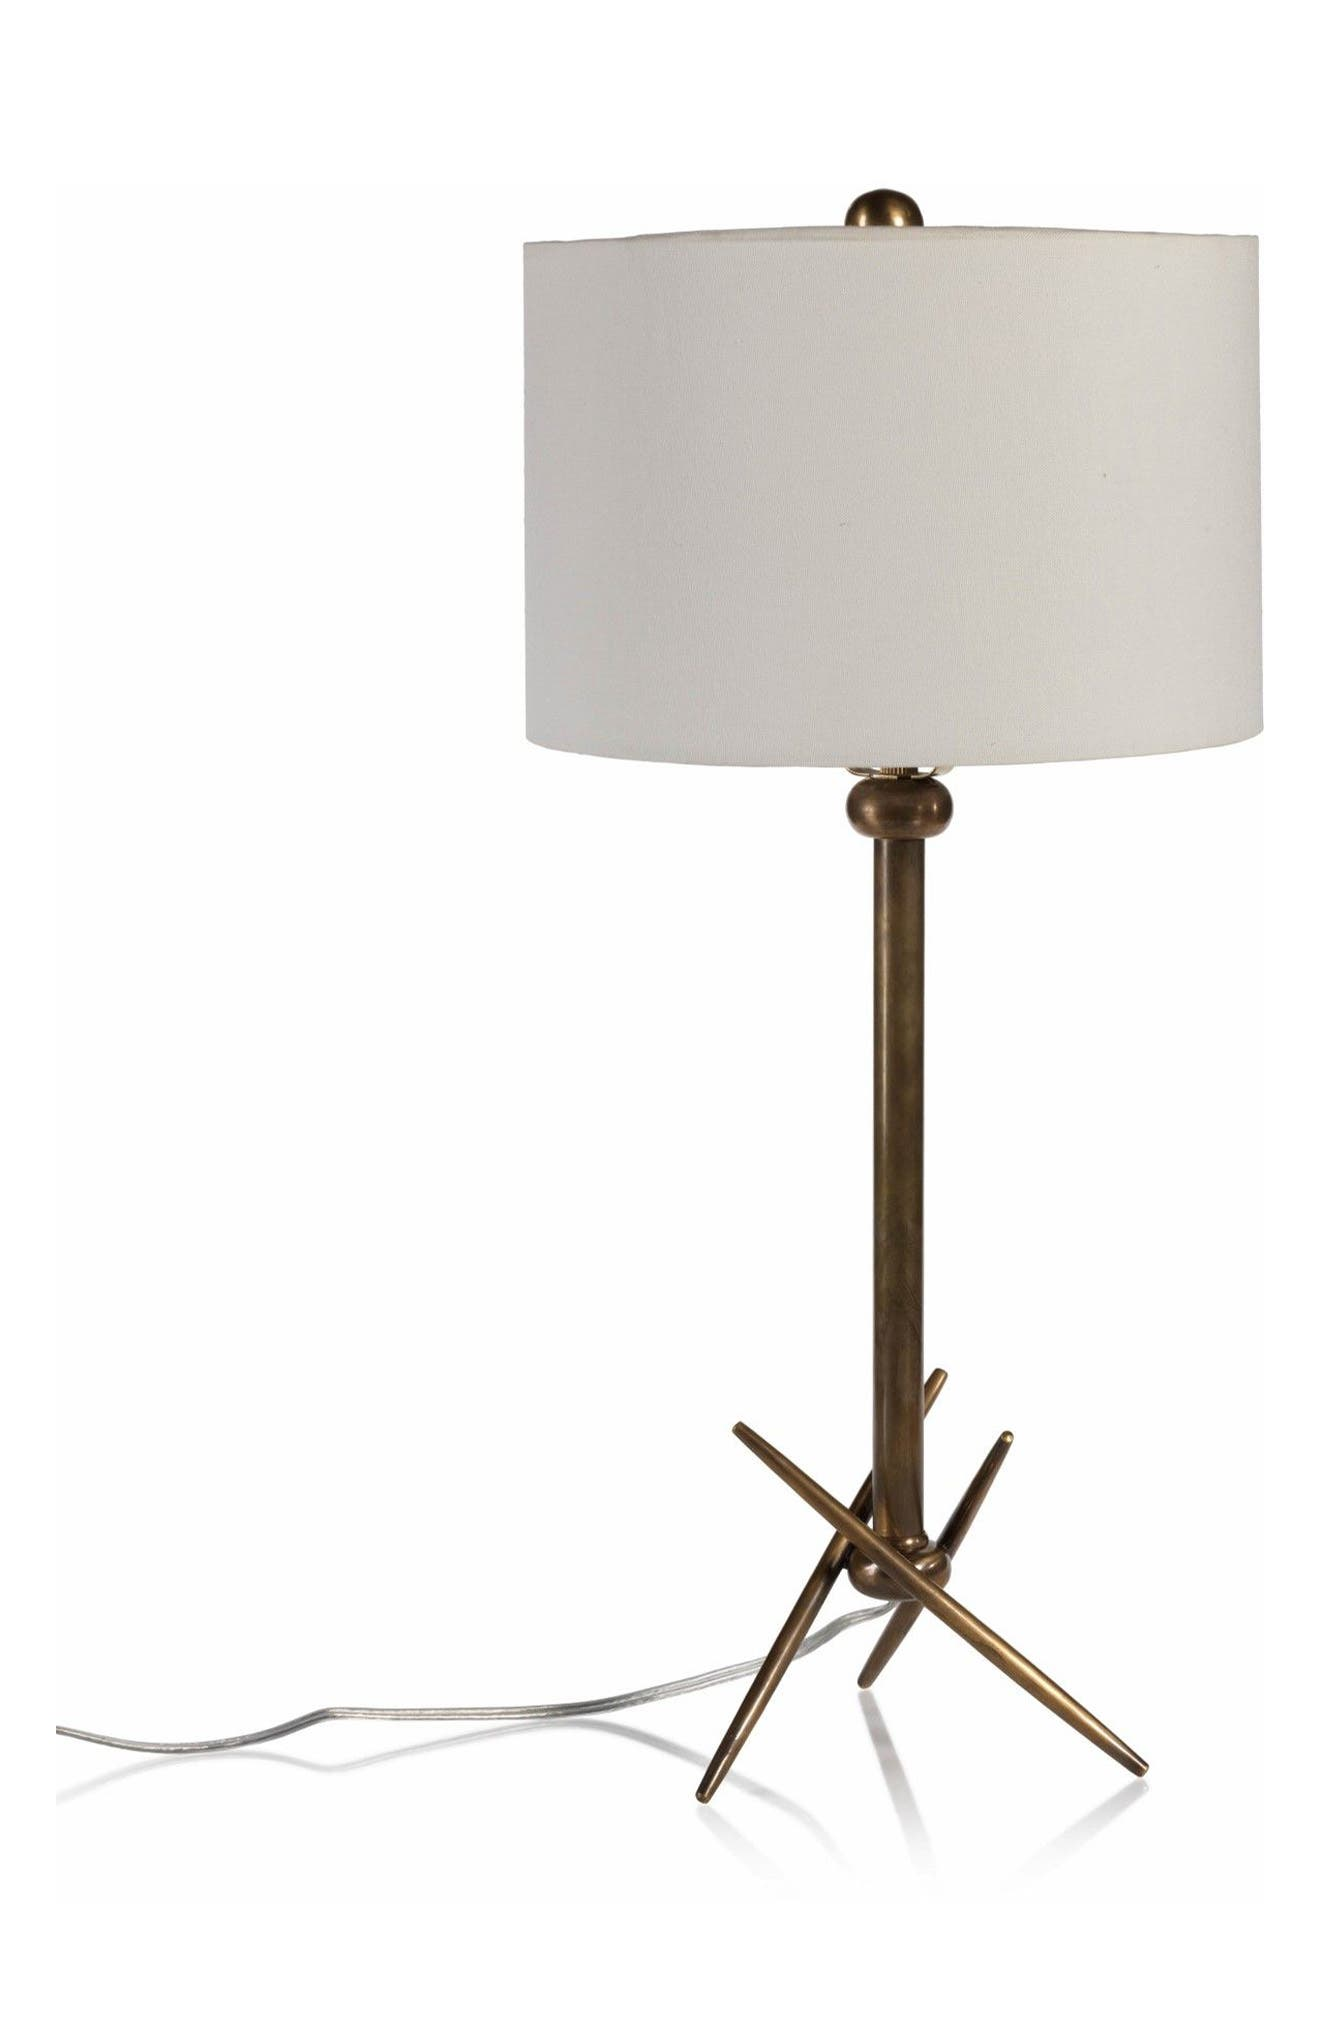 Palma Table Lamp,                             Main thumbnail 1, color,                             710